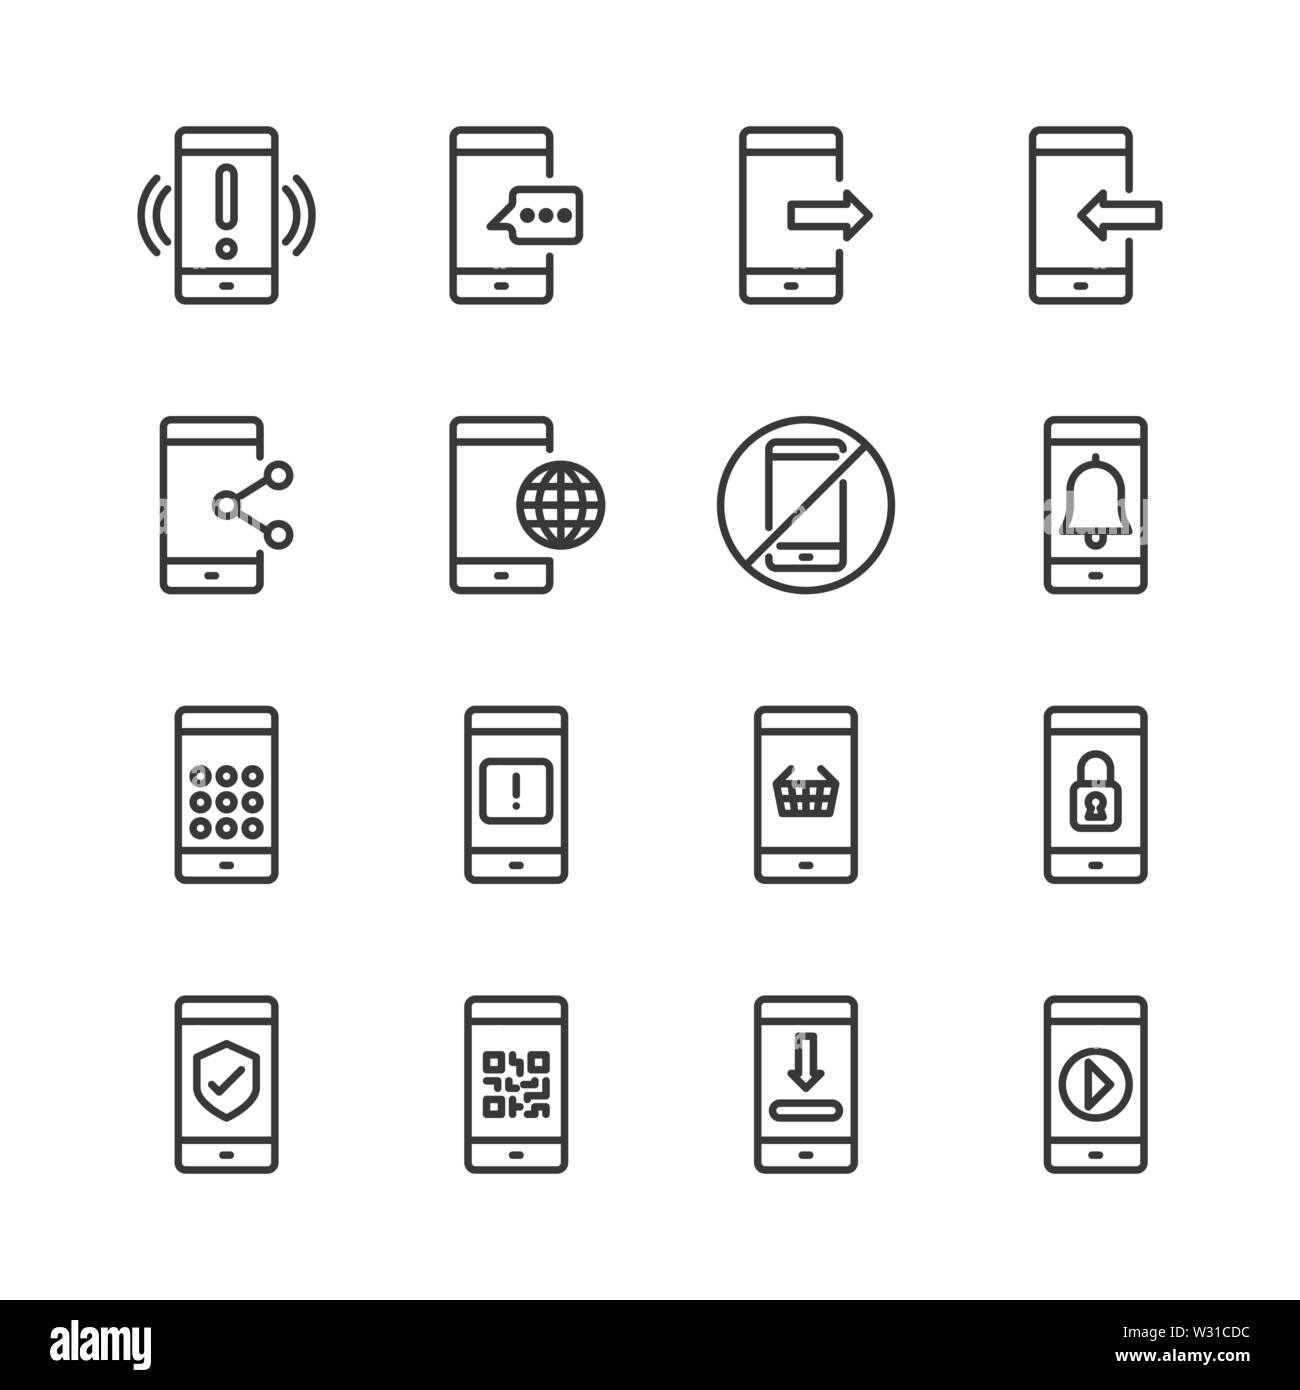 Cell phone icon set.Vector illustration - Stock Image